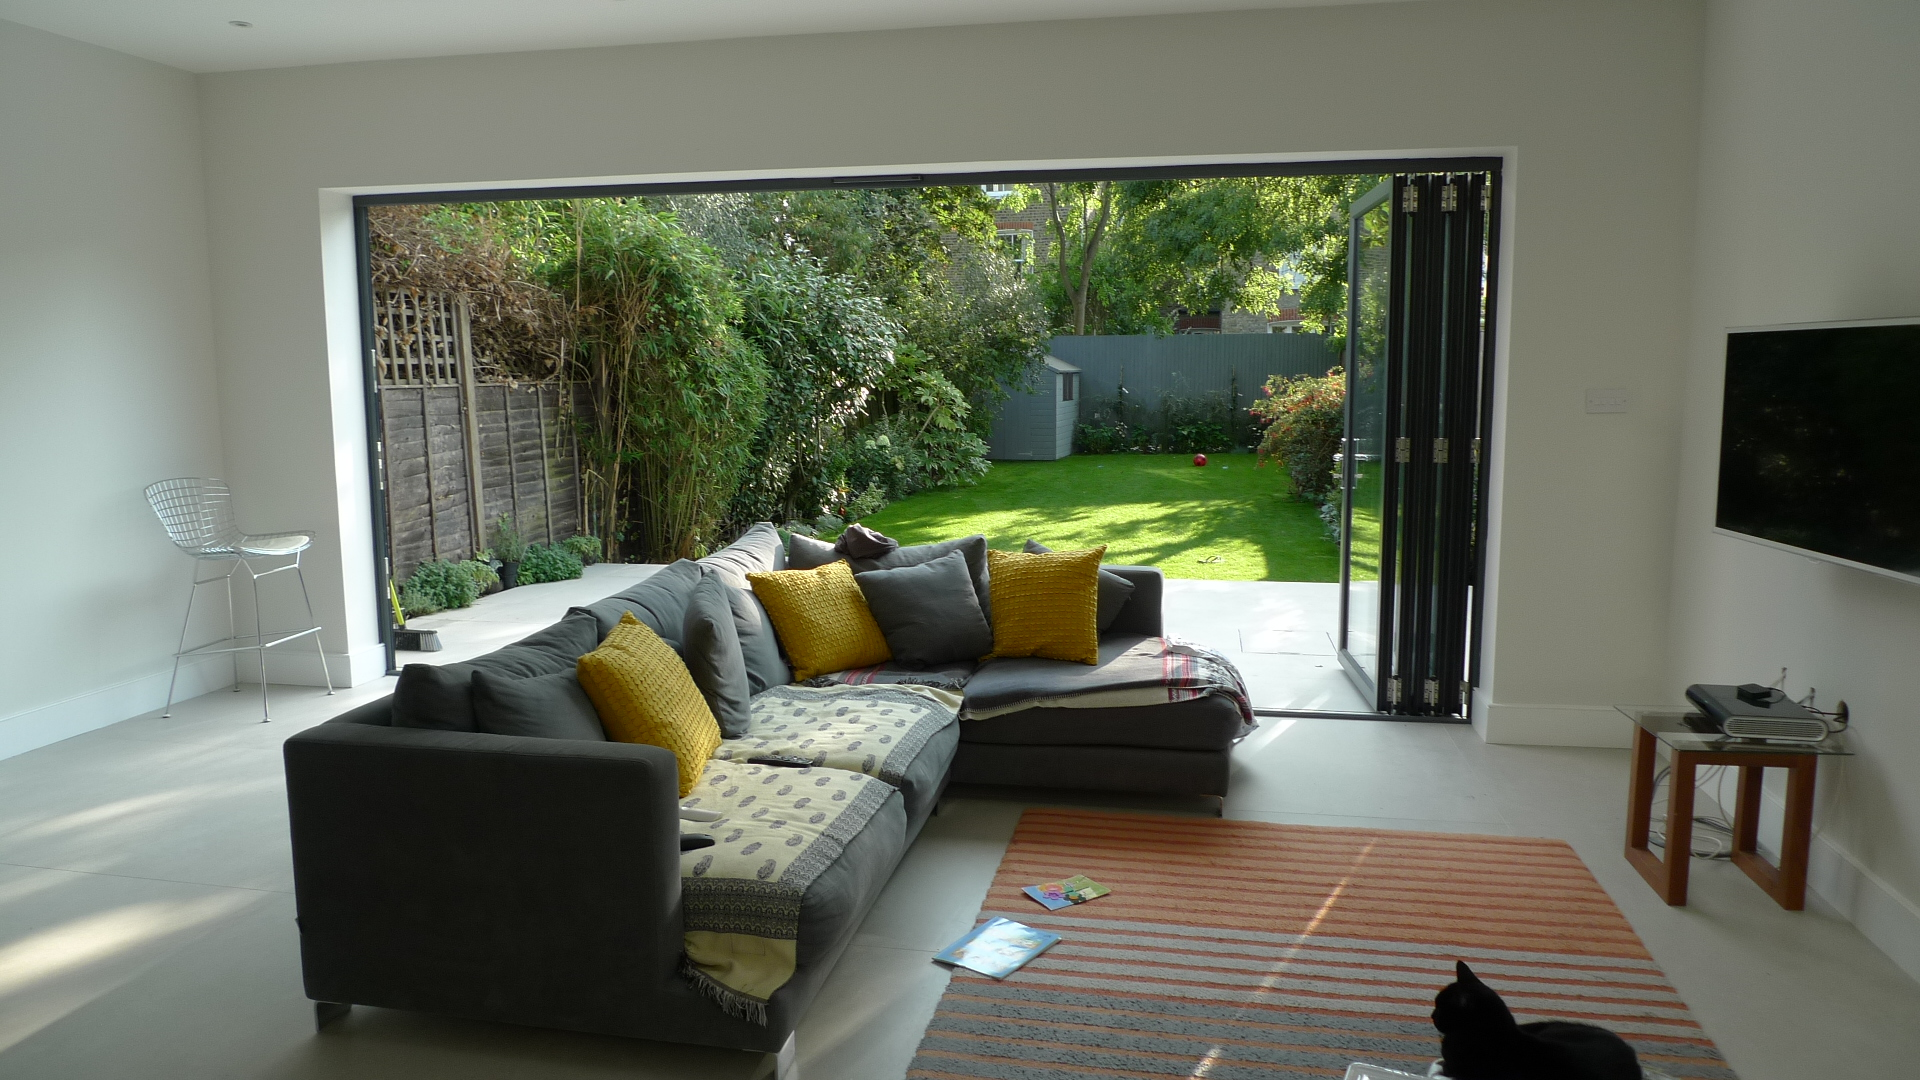 modern interior exterior garden house design Weaver Balham Tooting London (2)